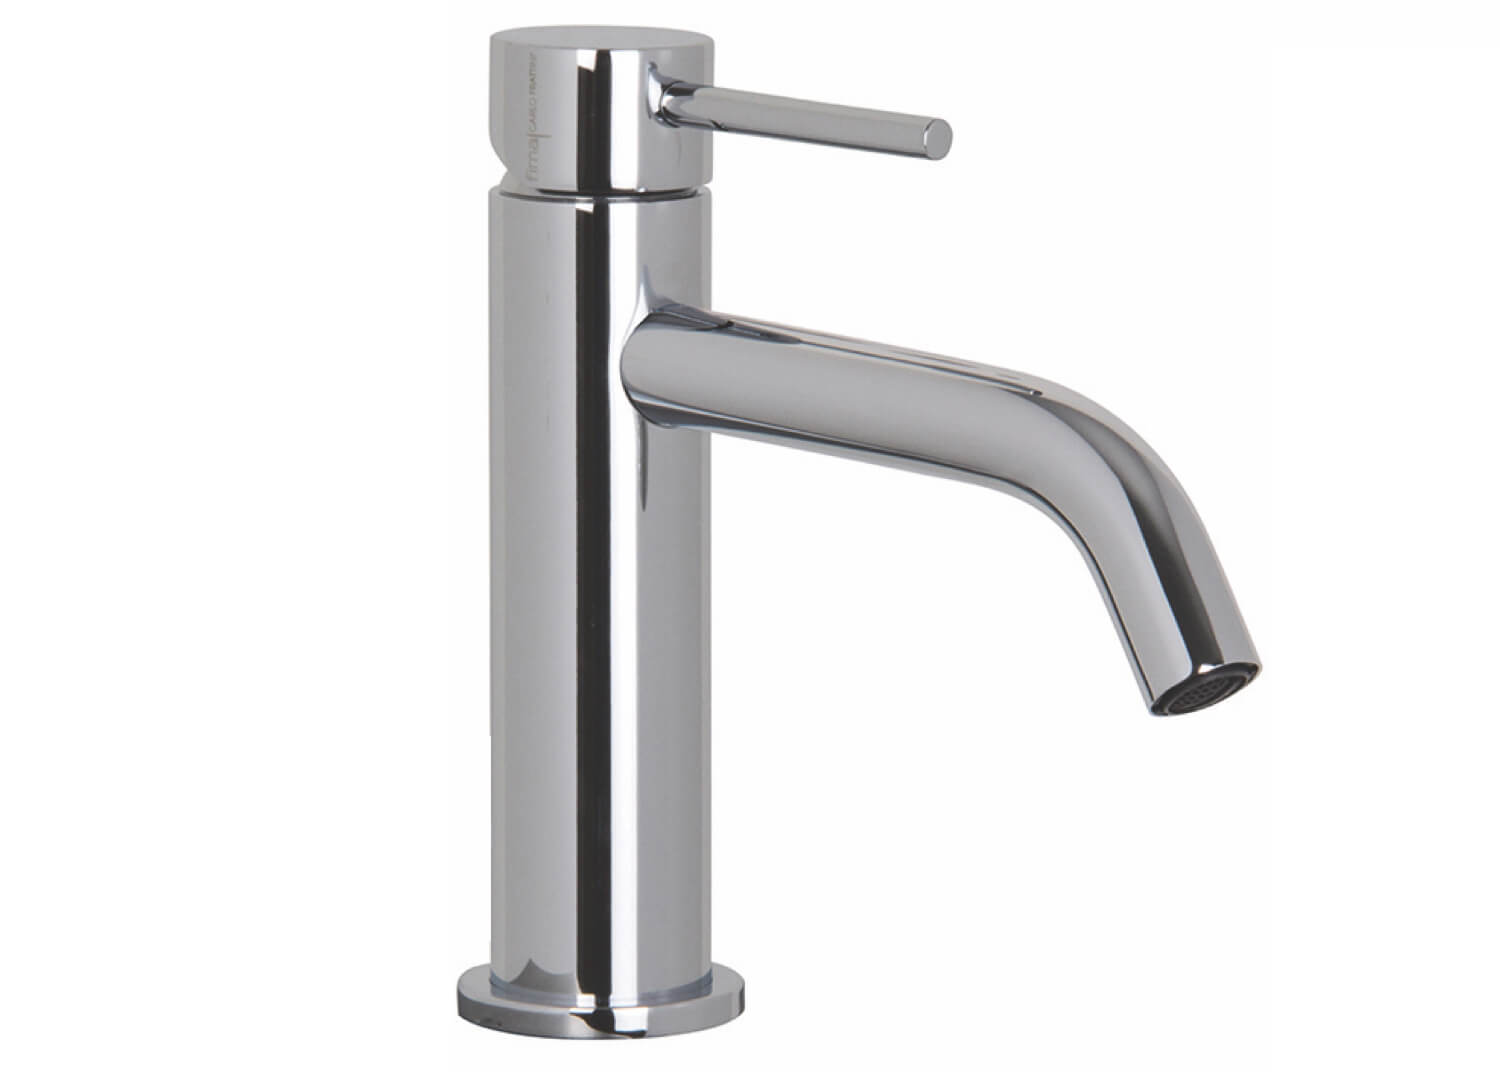 Fima Spillo Up Basin Mixer Bathe